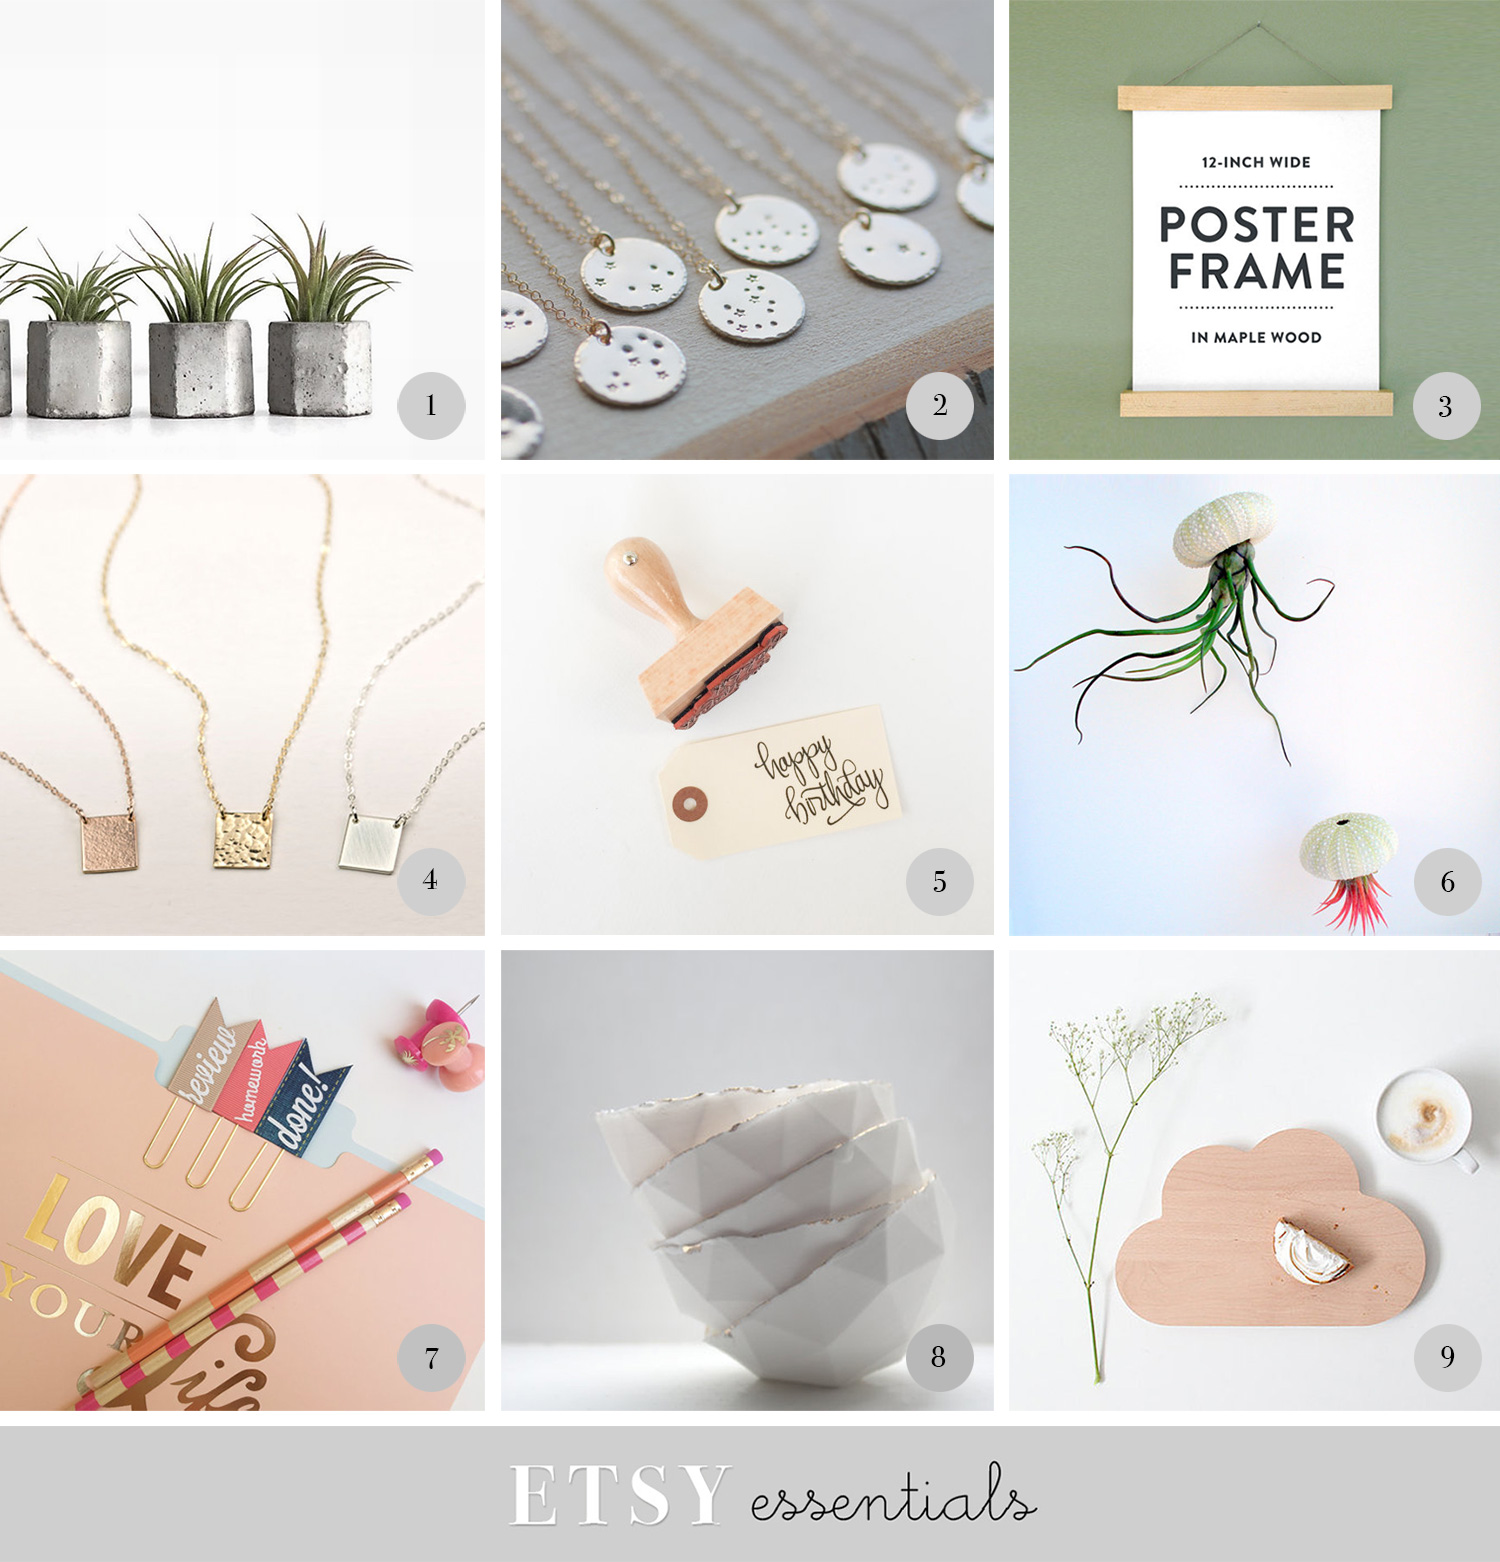 etsy-essentials